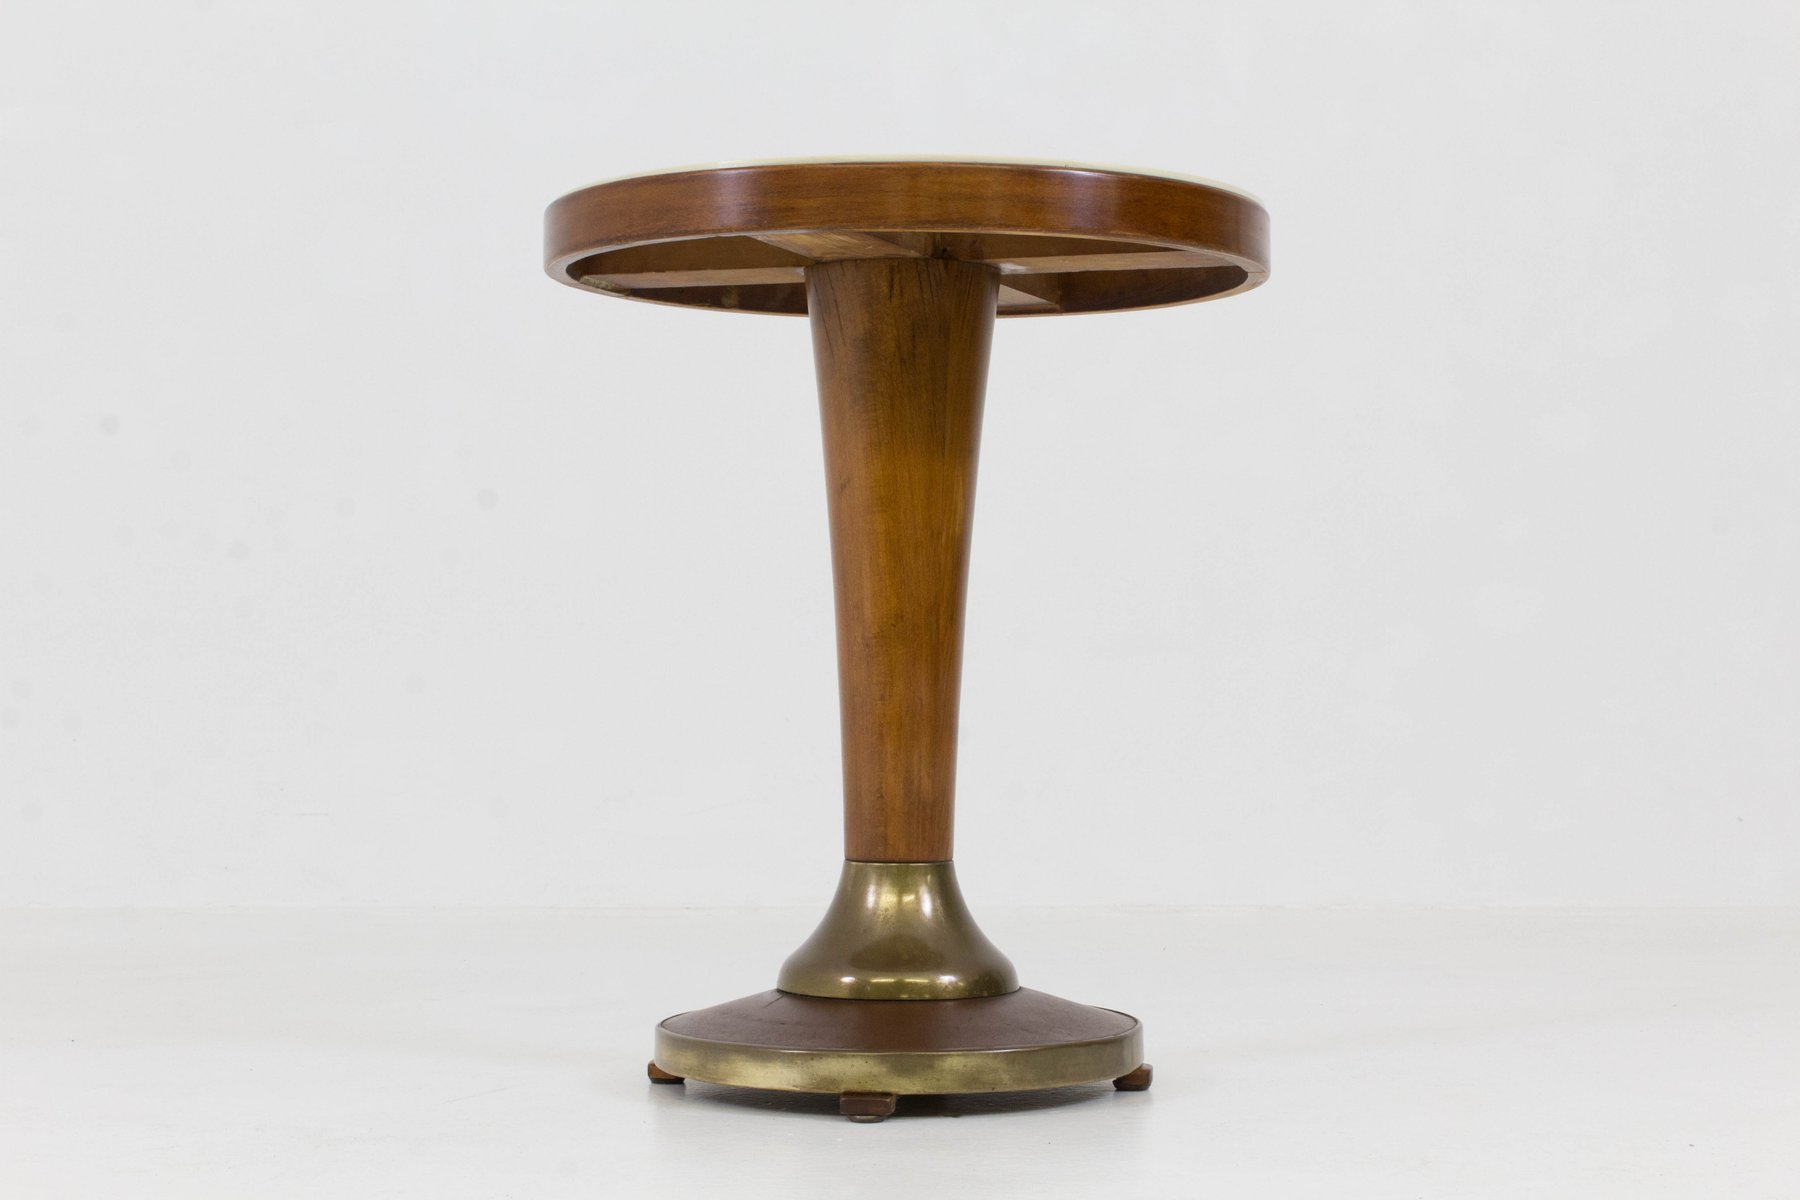 French Art Deco Side Table With Glass Top, 1930s 8. $1,958.00. Price Per  Piece